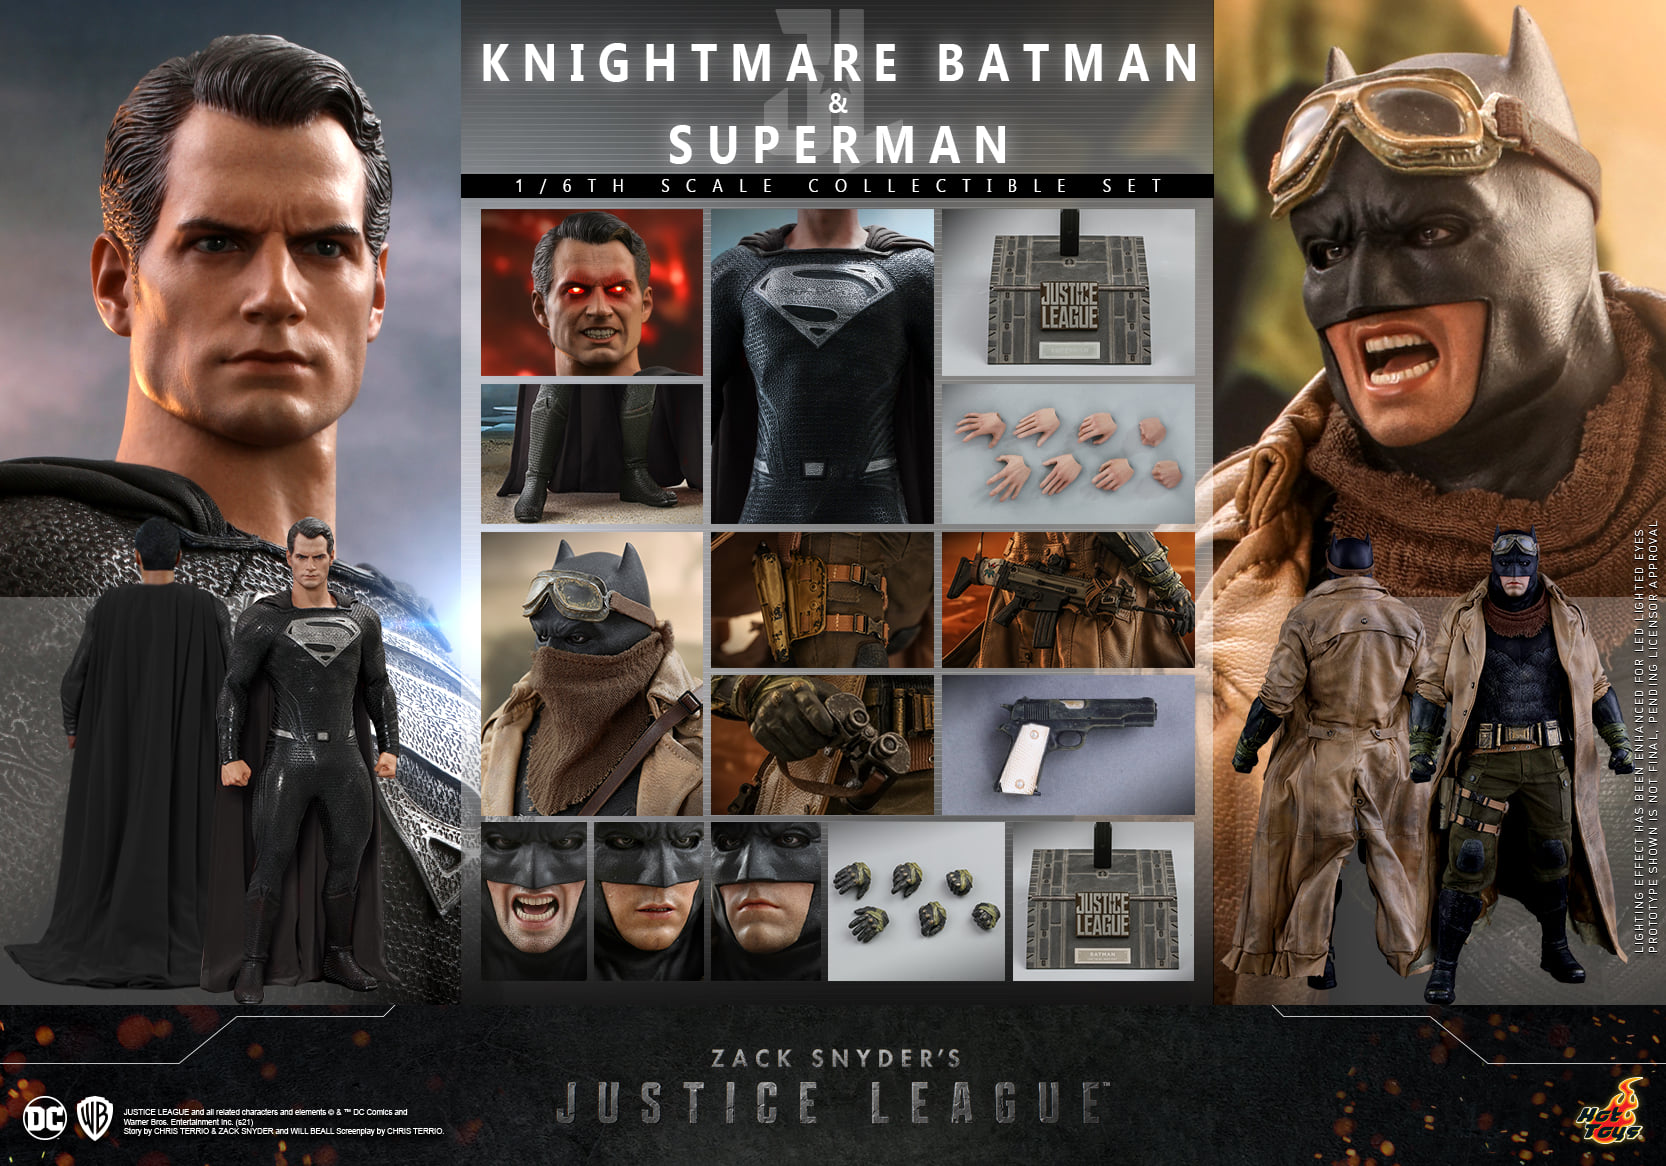 hot-toys-knightmare-batman-and-superman-1-6-scale-collectible-set-justice-league-collectibles-img35